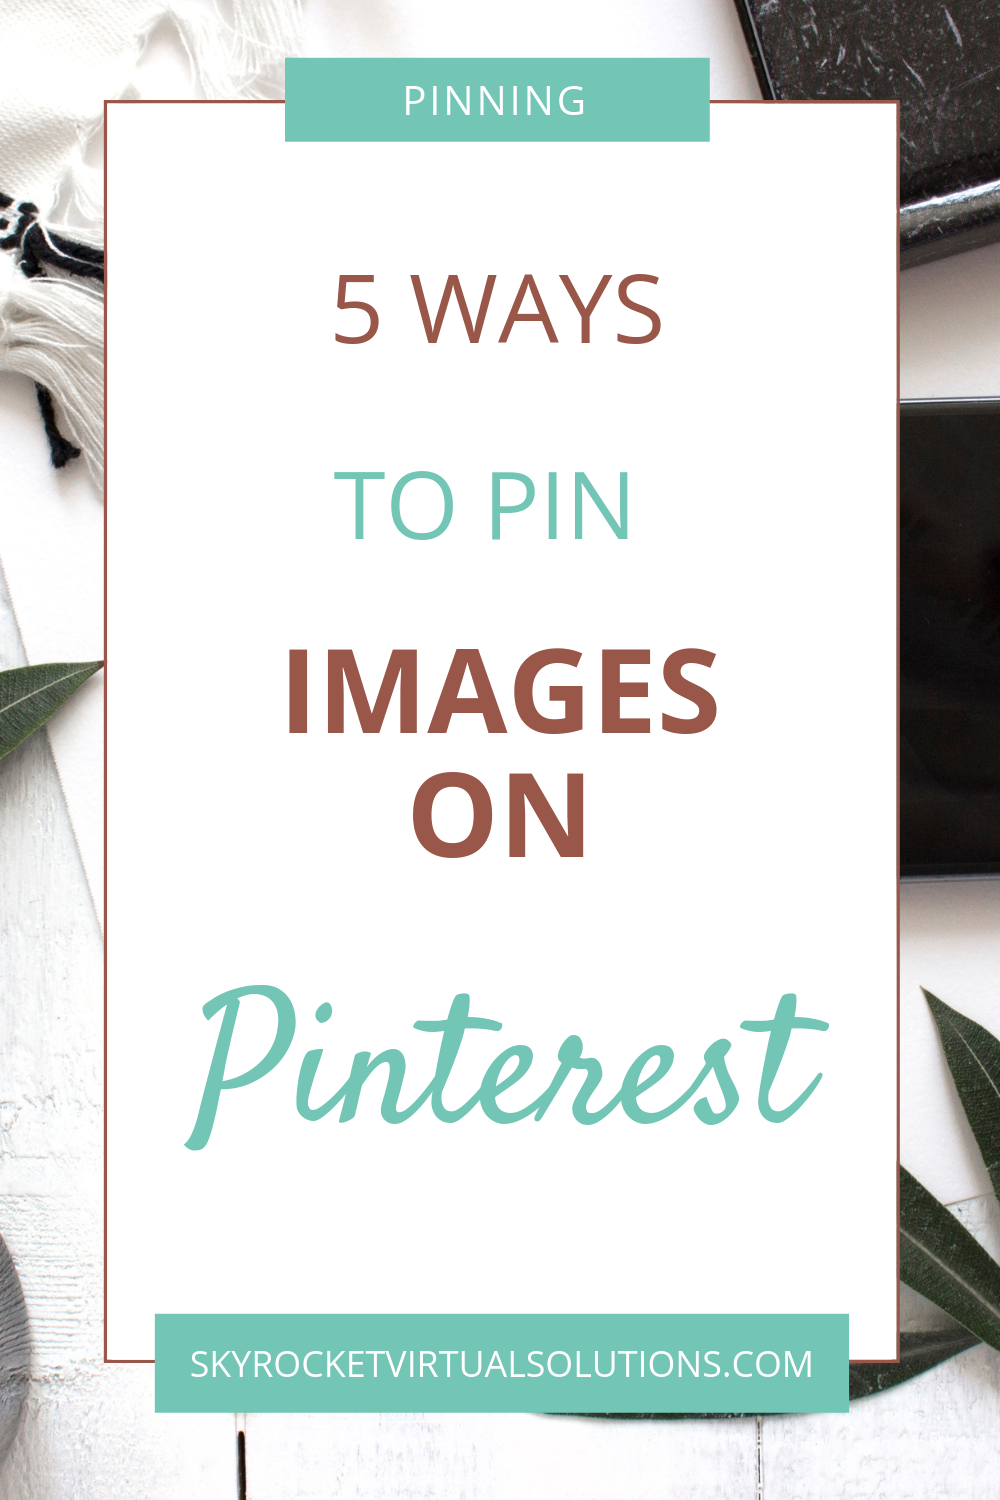 Pinning Images On Pinterest).png